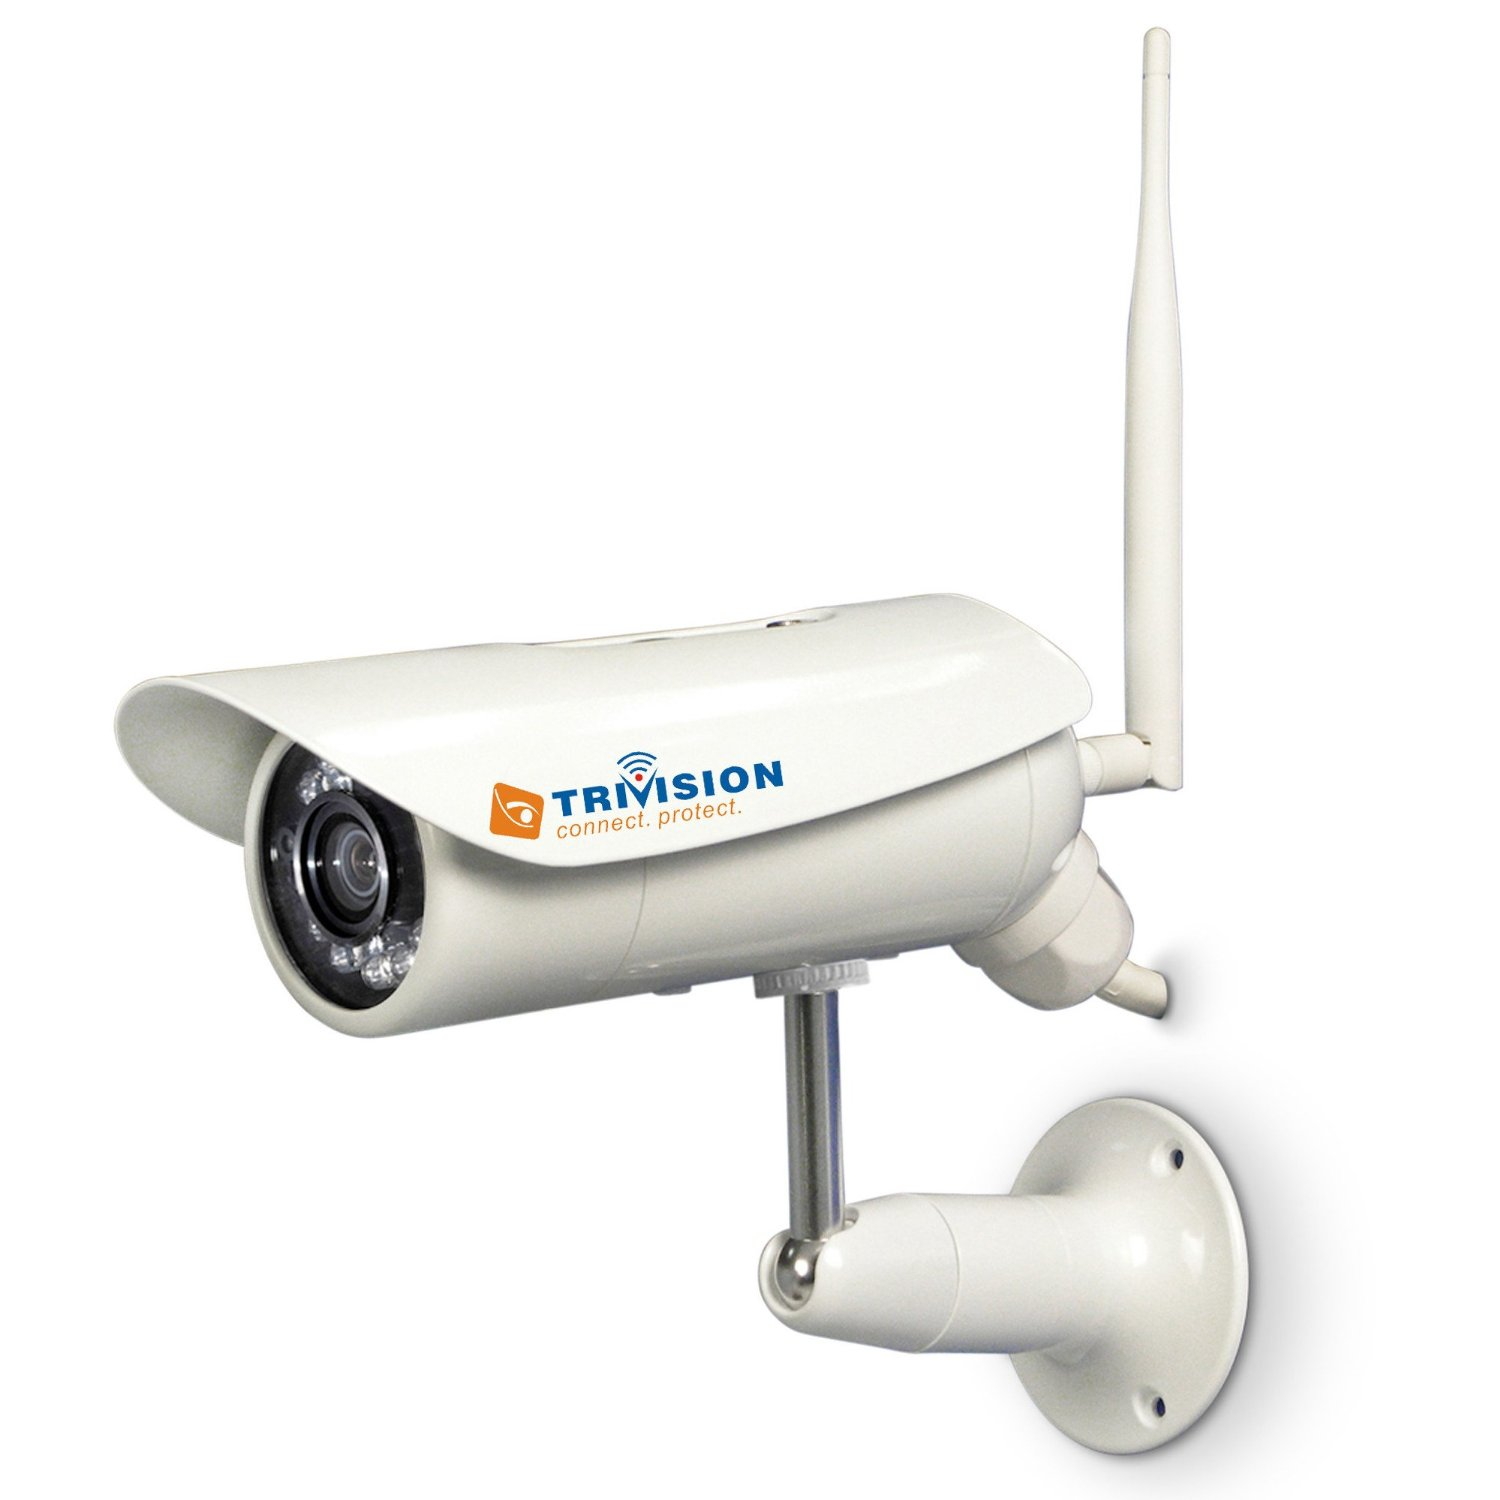 TriVision Outdoor Security Systems